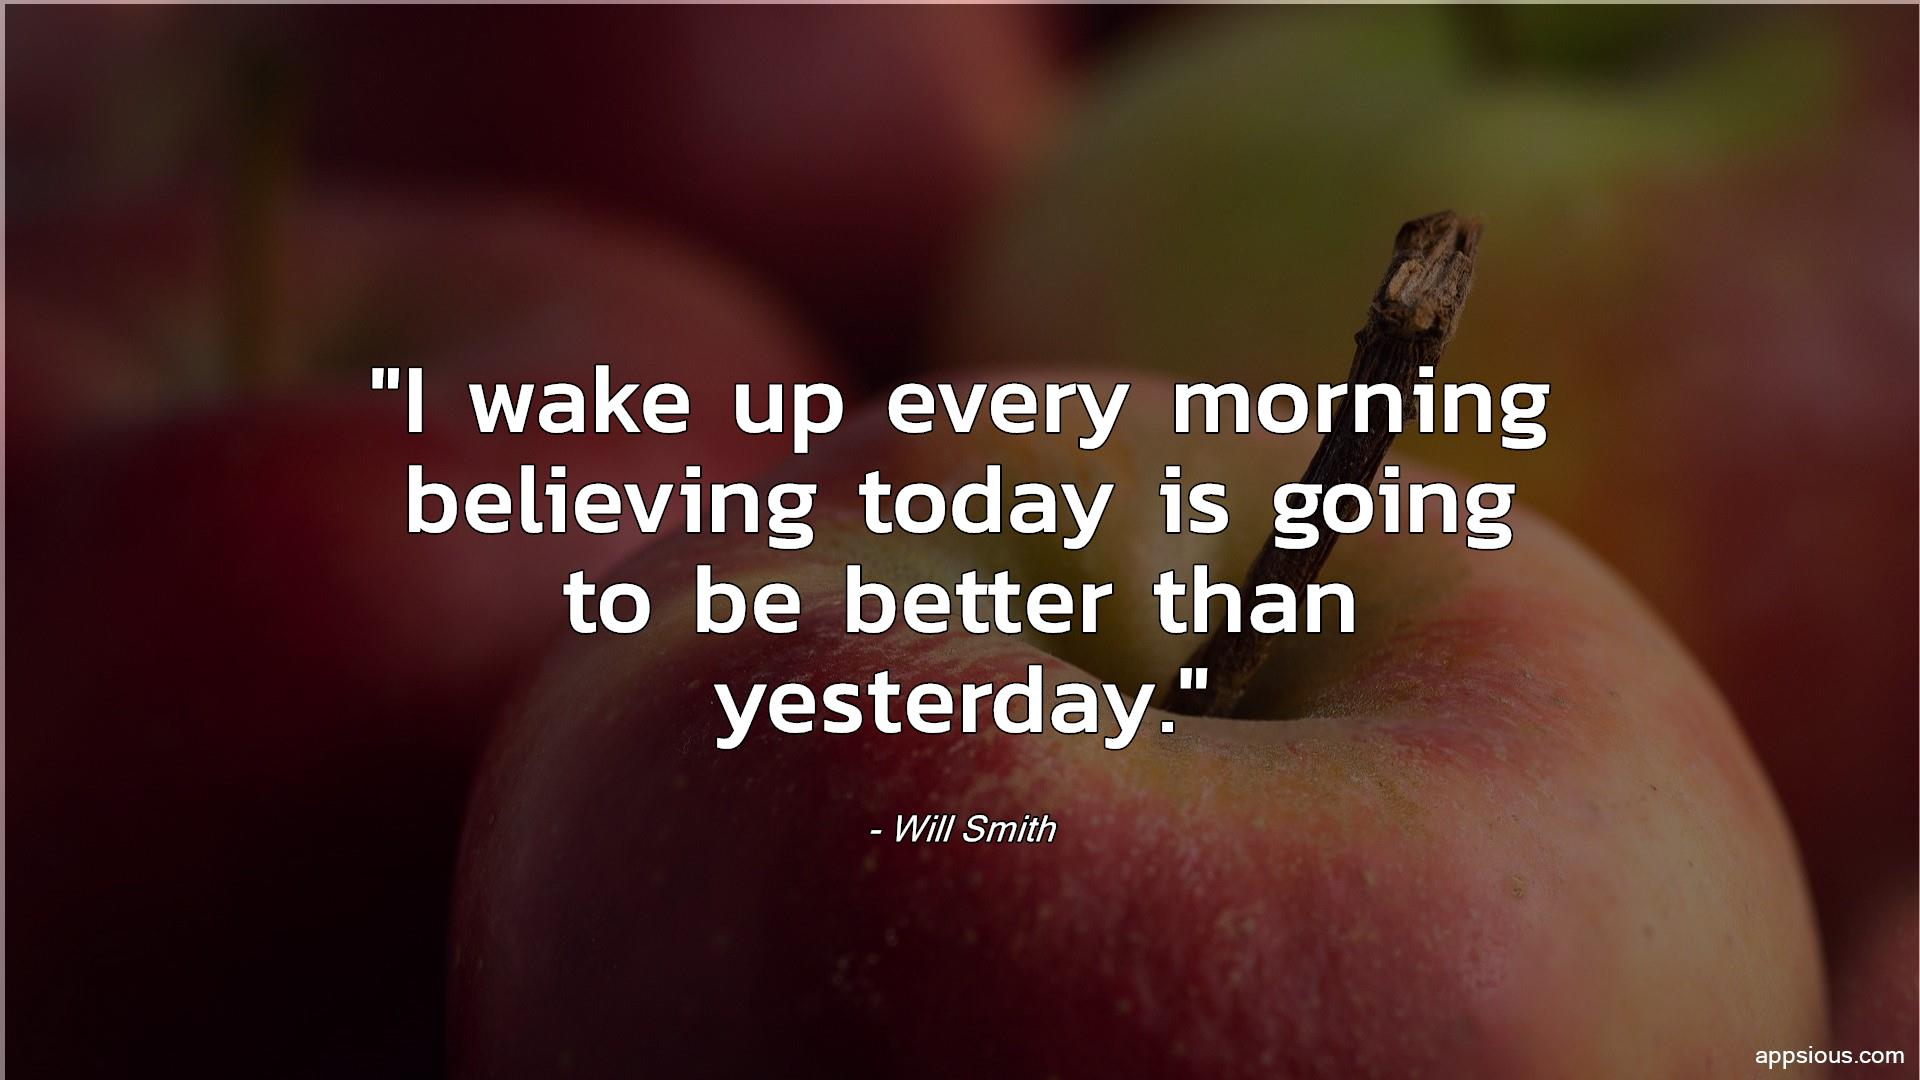 I wake up every morning believing today is going to be better than yesterday.